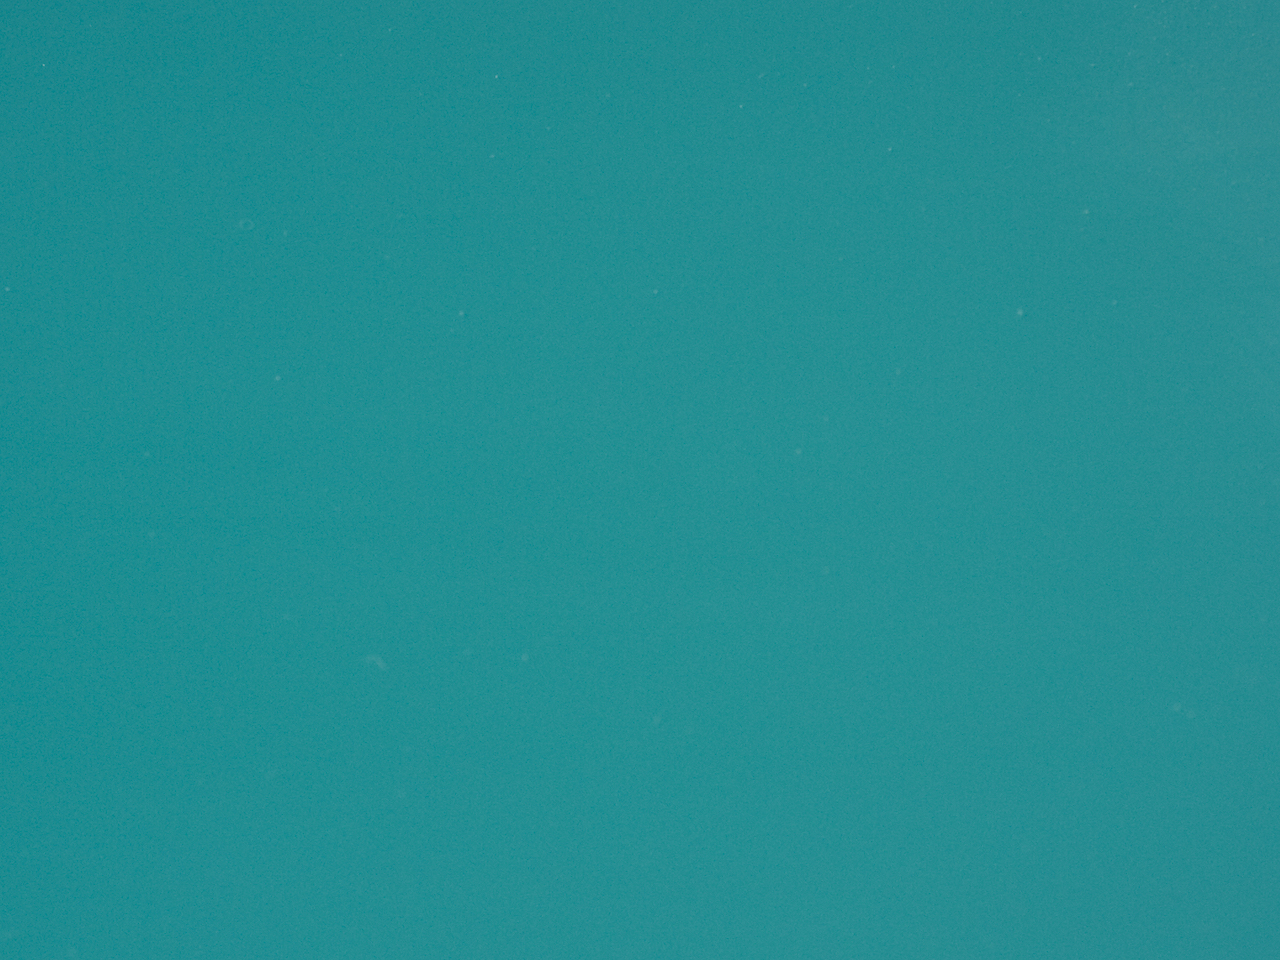 Opaque Teal   Opaque  Smooth texture